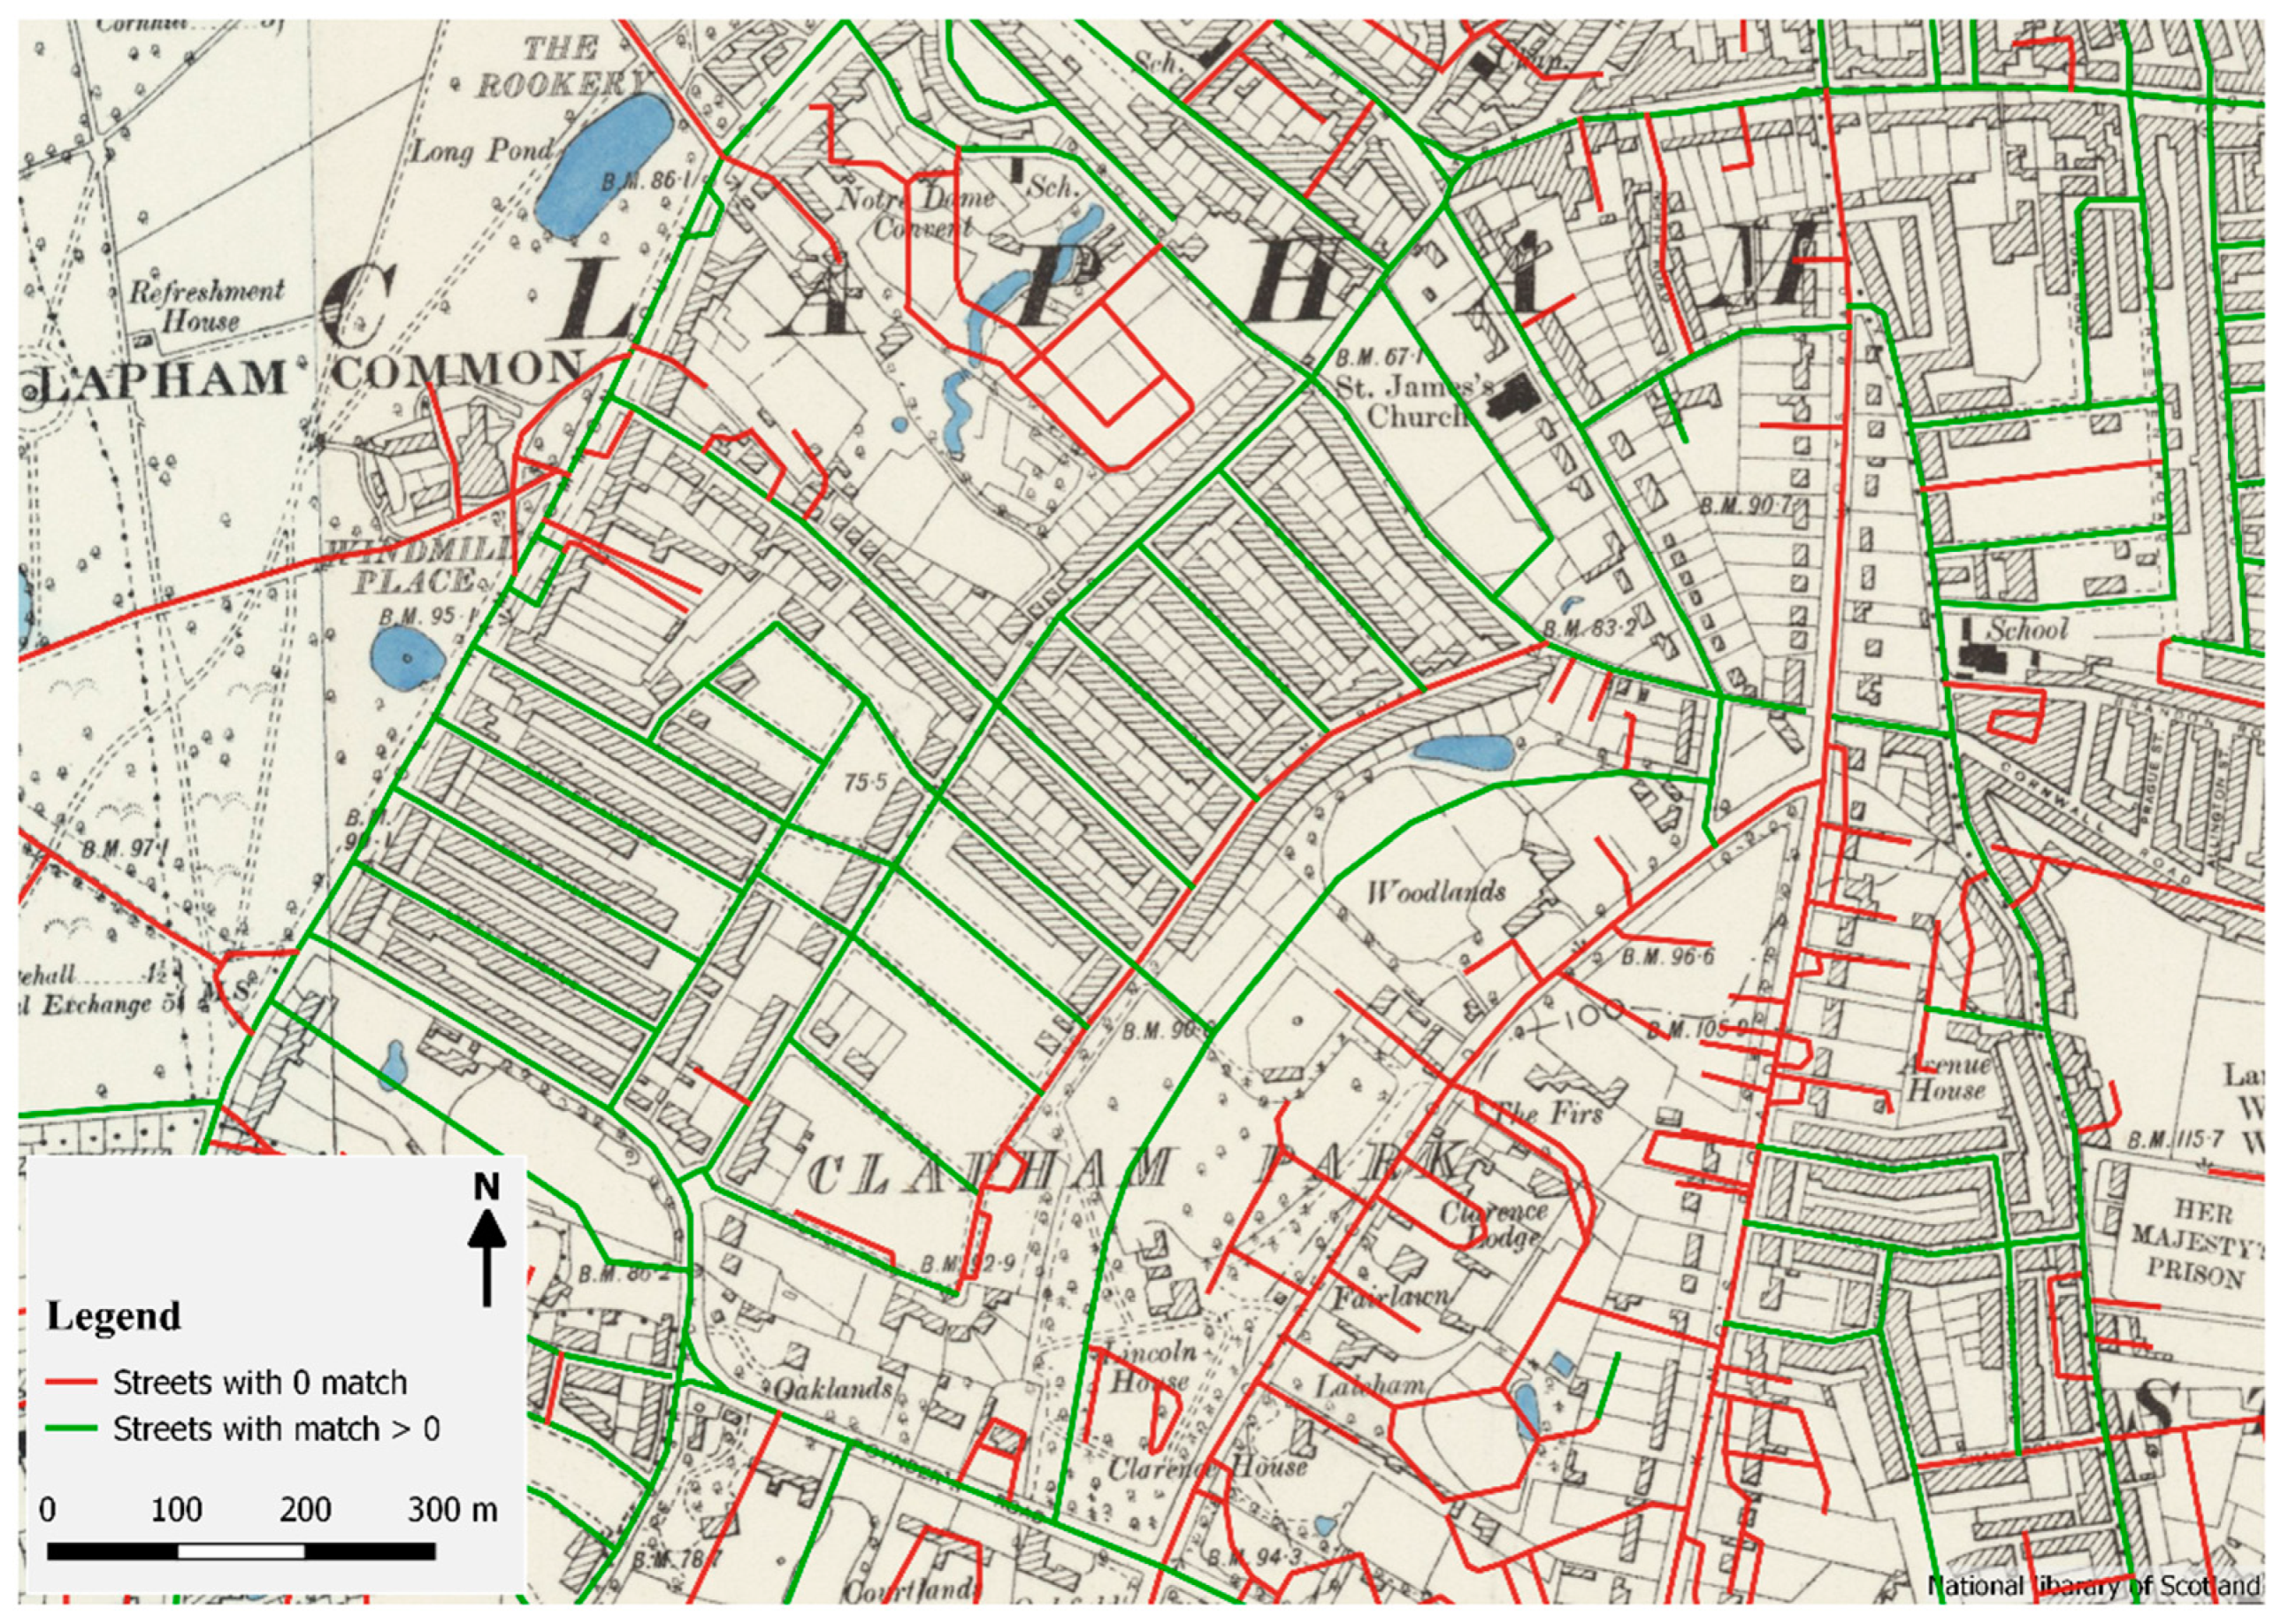 IJGI | Free Full-Text | Geo-Referencing and Mapping 1901 ... Geo Mapping on